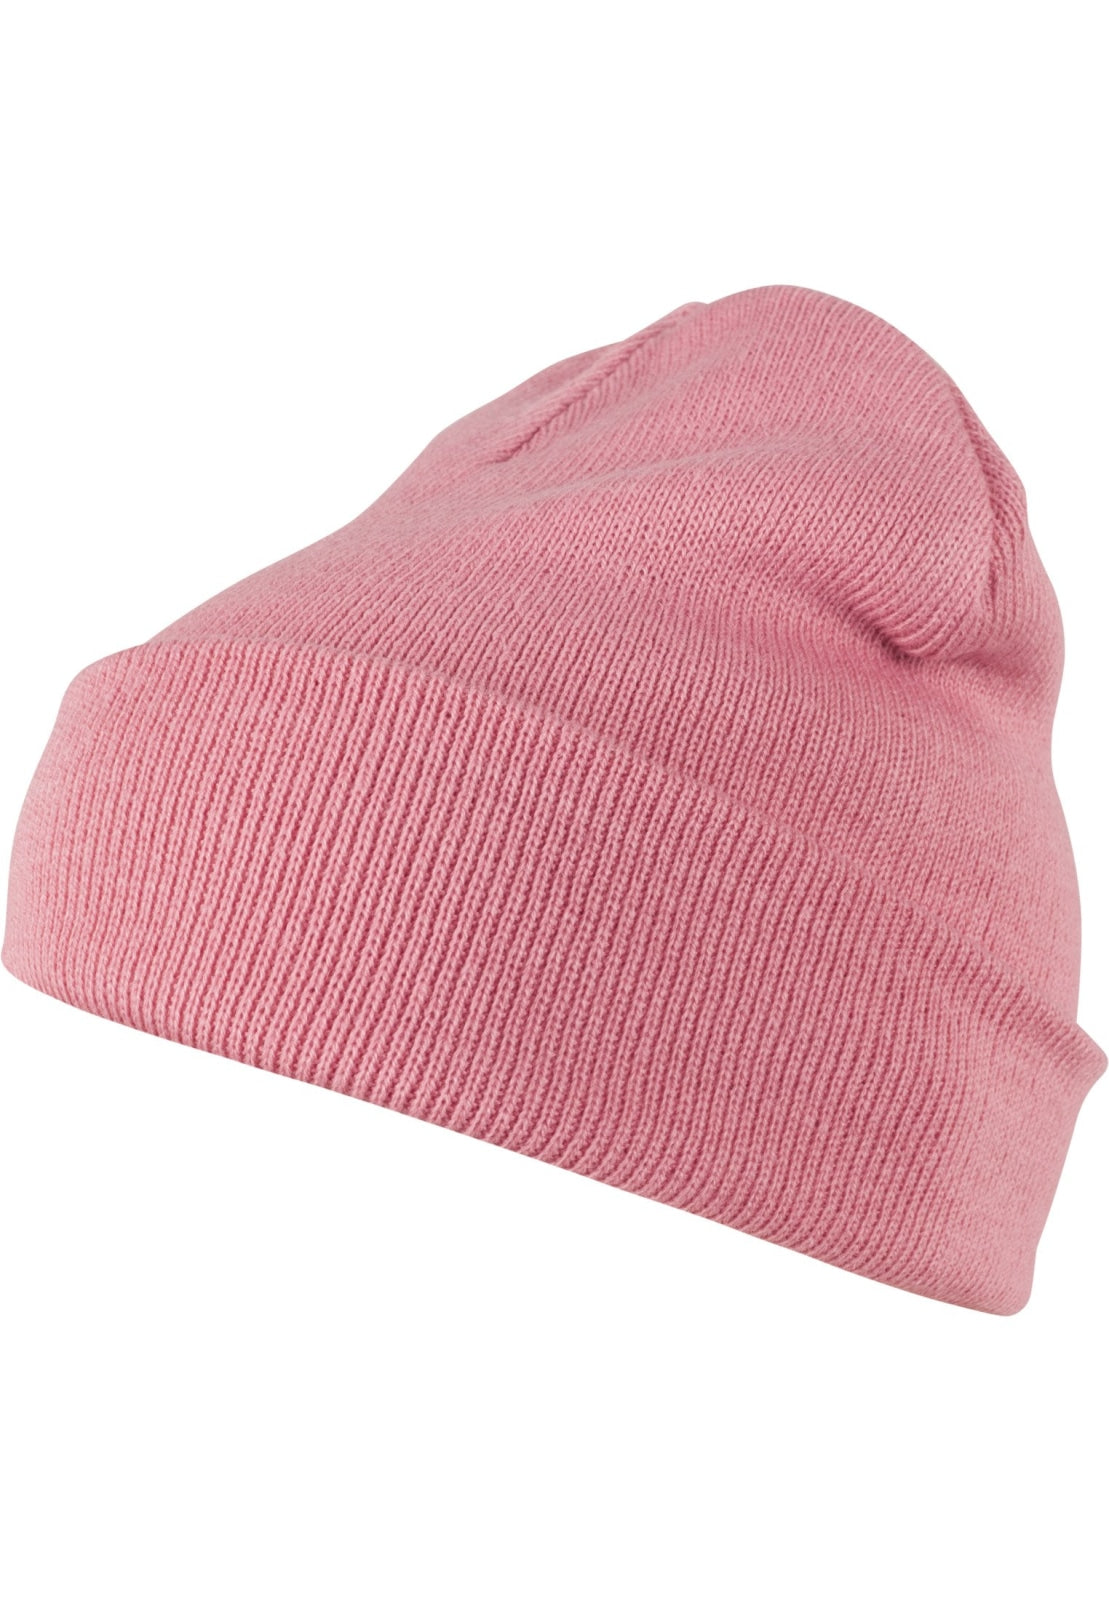 Beanie Pastel Basic Flap (5 Colors) Light Pink / One Size Headwear Masterdis